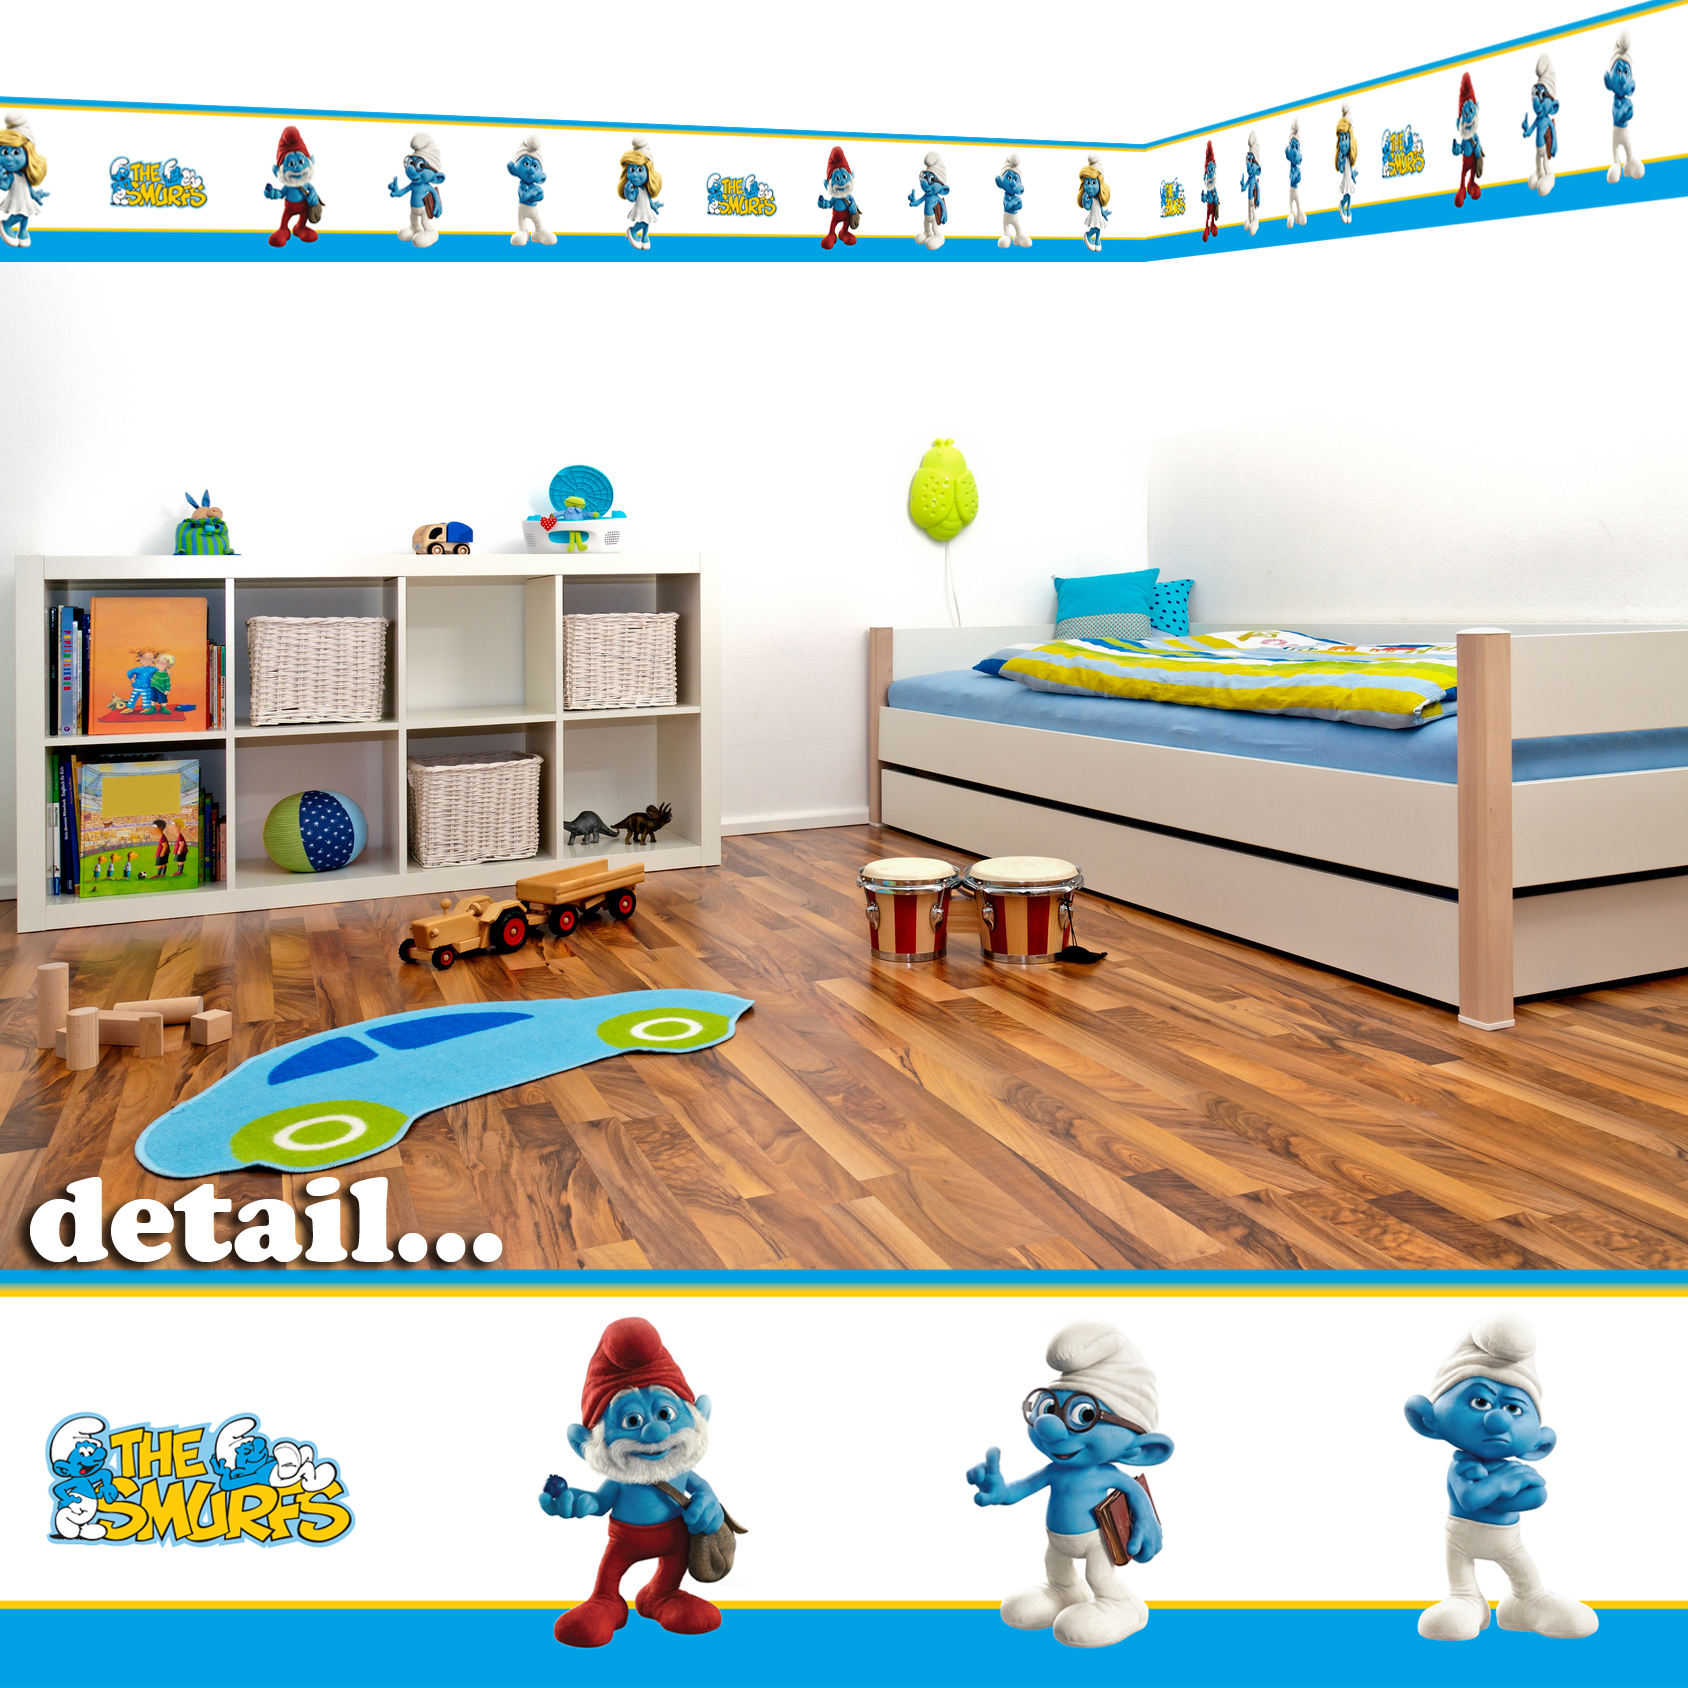 Details about Smurfs Self Adhesive Decorative Wall Border - 5m - Children\'s  Bedroom/Playroom